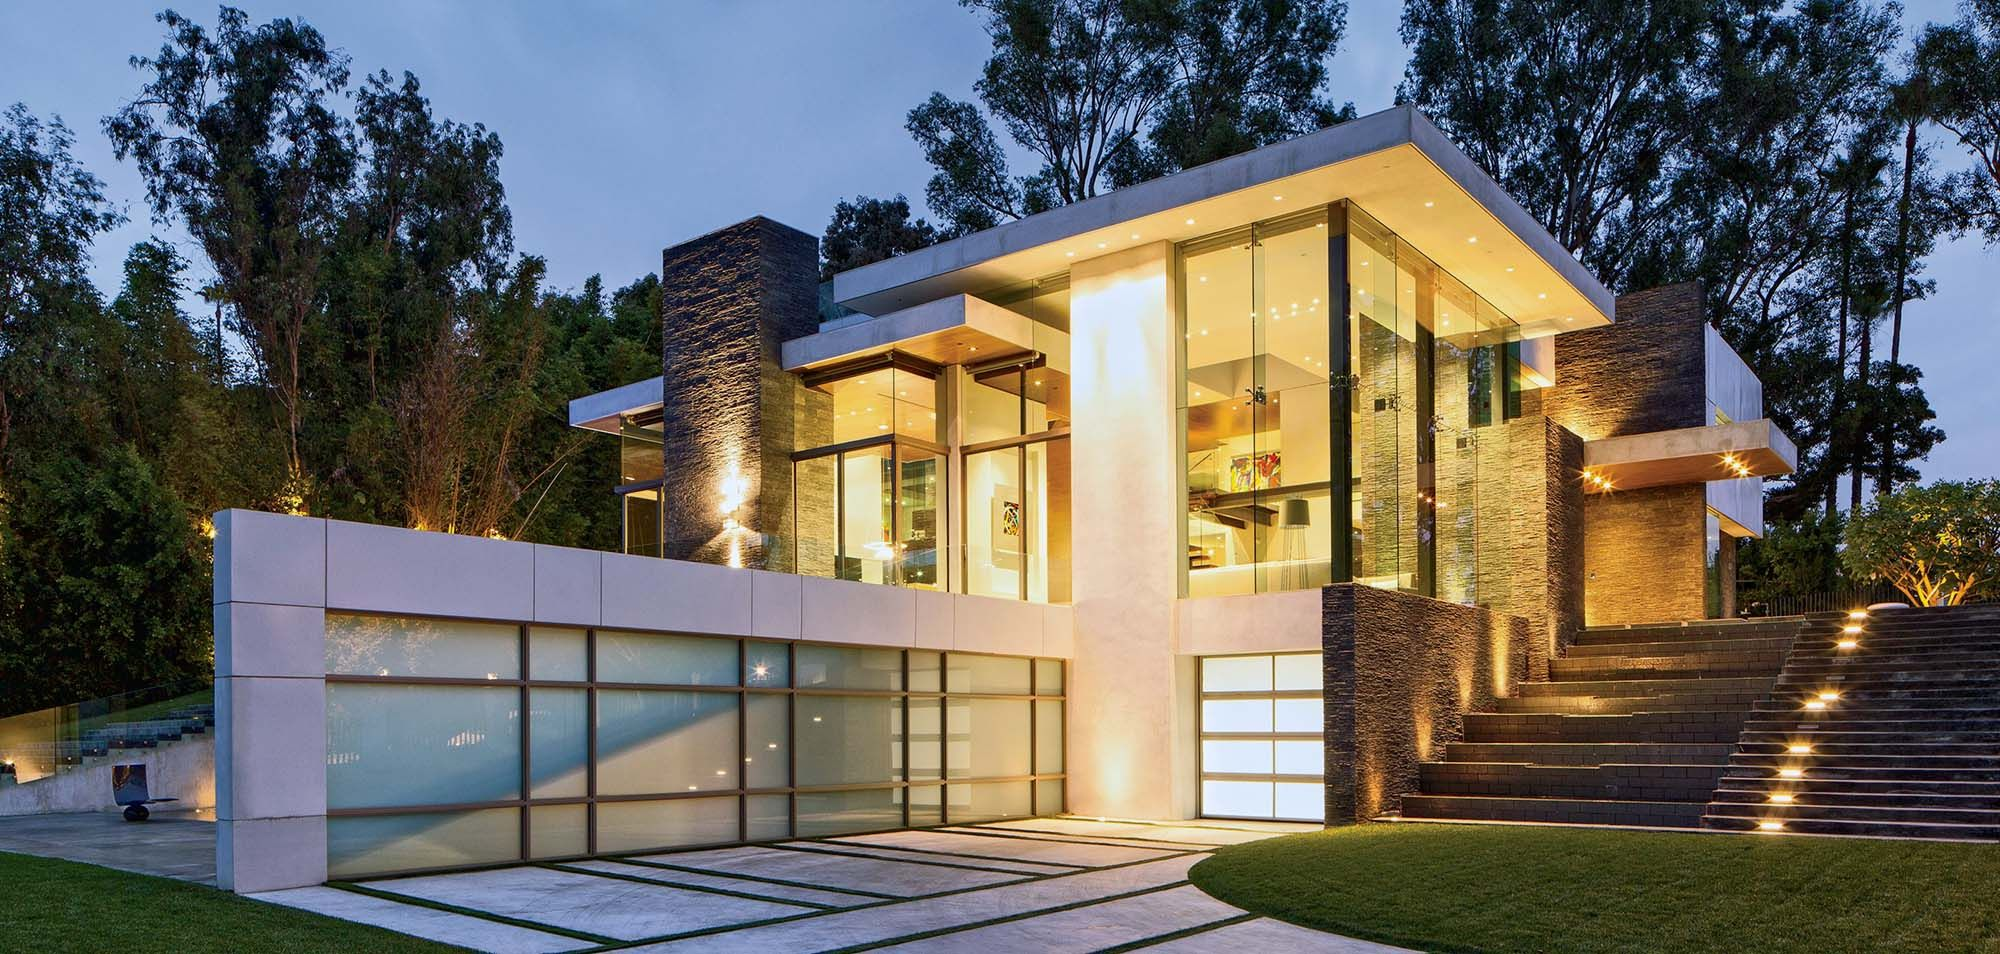 Modern Home With Flat Roof And Stucco Summit Homes Beverly Hills Houses Modern Flat